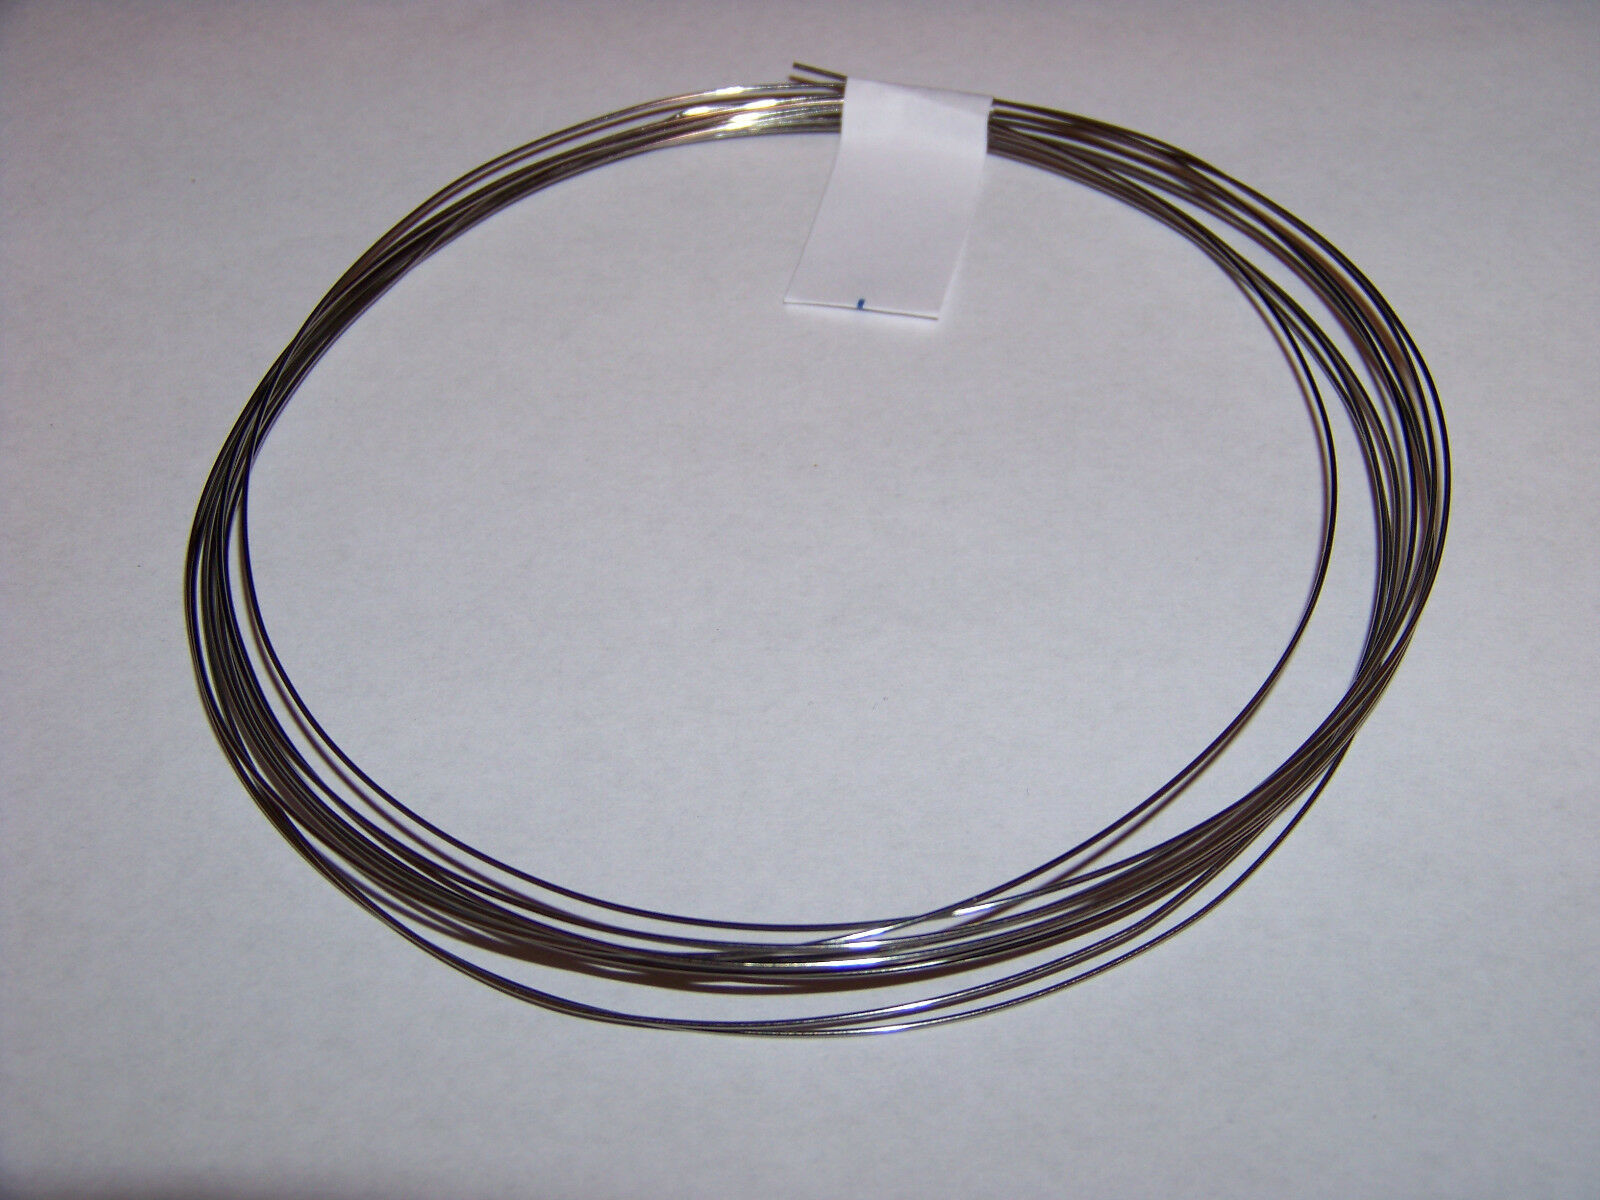 Kanthal Wire A-1 22 Gauge 10 FT Build Coils Vaporizer 10ft 22ga ...